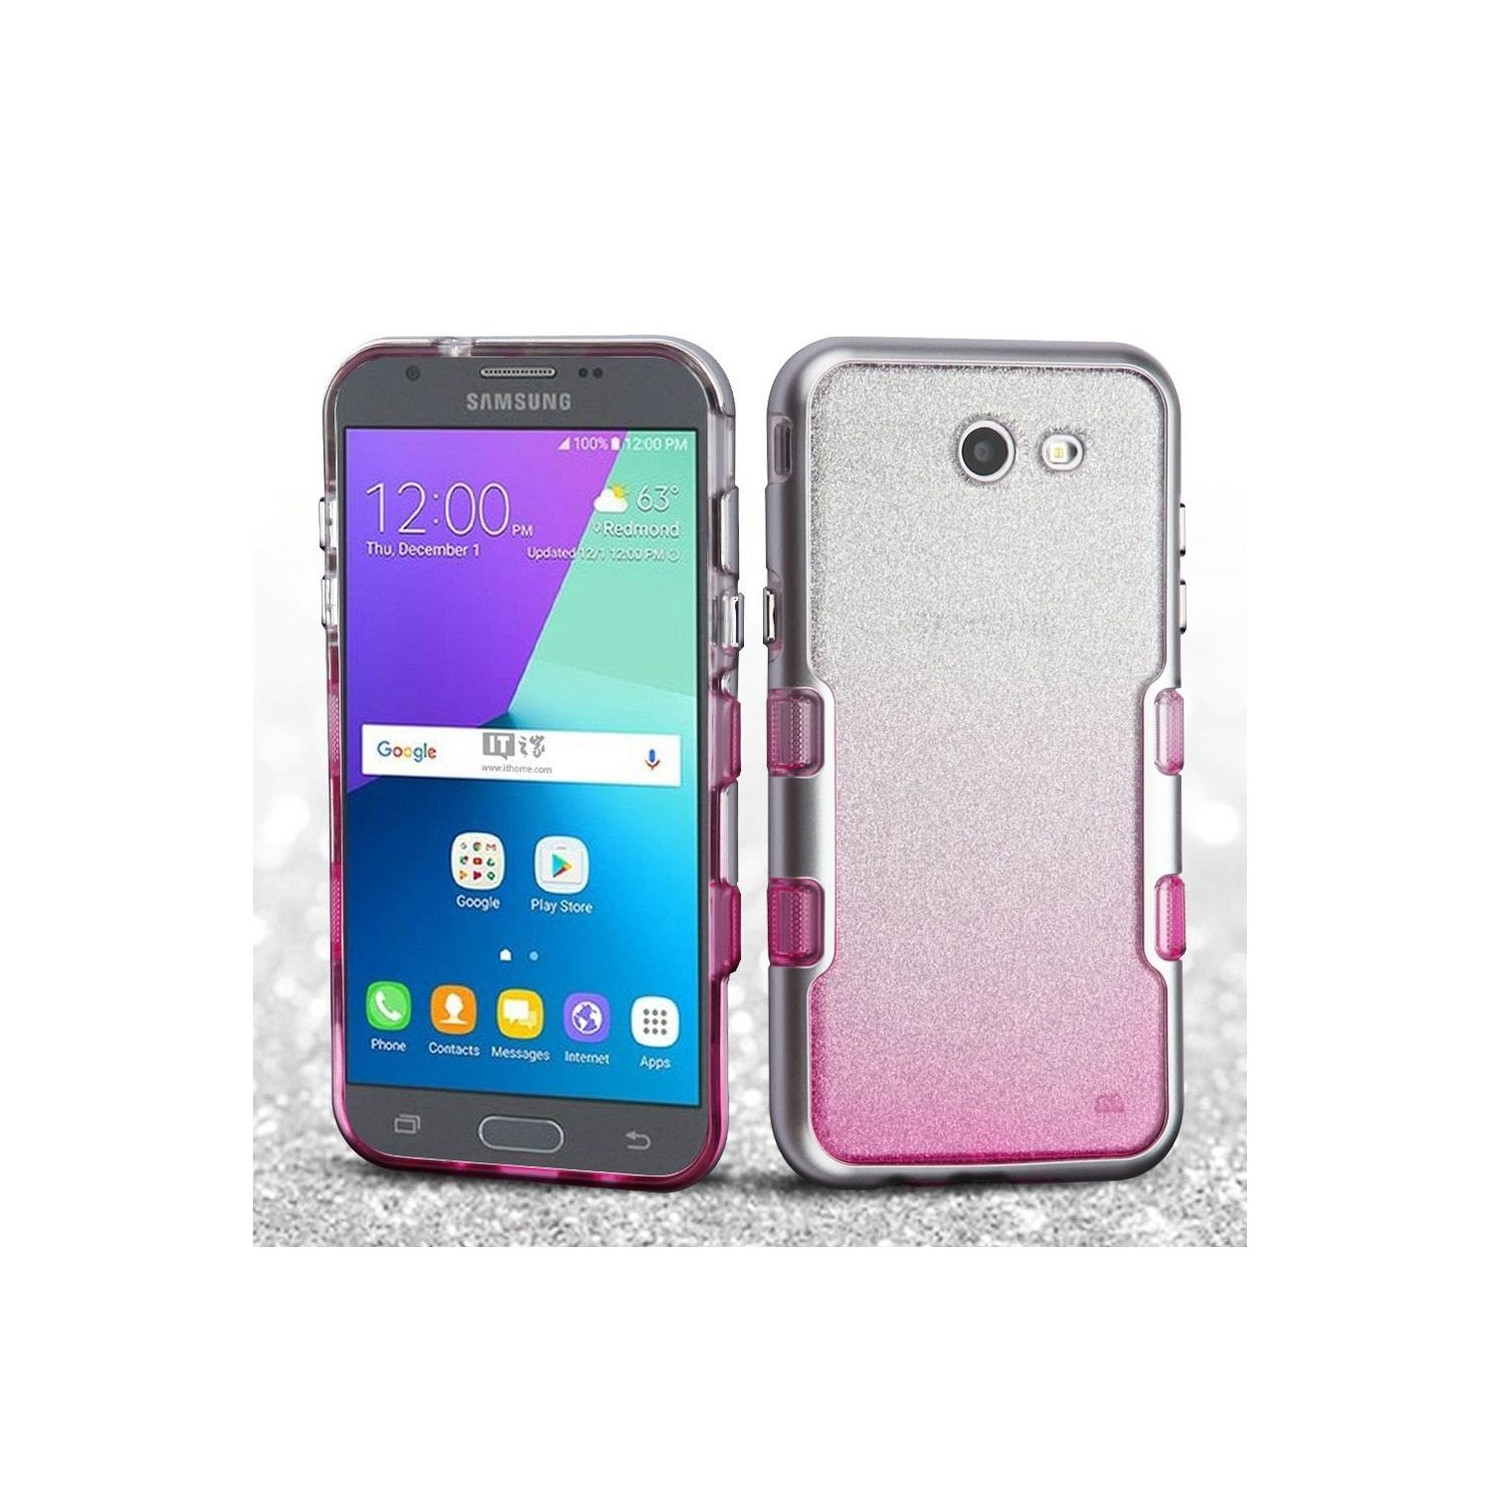 Insten Tuff Hard Case For Samsung Galaxy Amp Prime 2 Express Prime 2 J3 2017 J3 Emerge Silver Other Samsung Cases Best Buy Canada